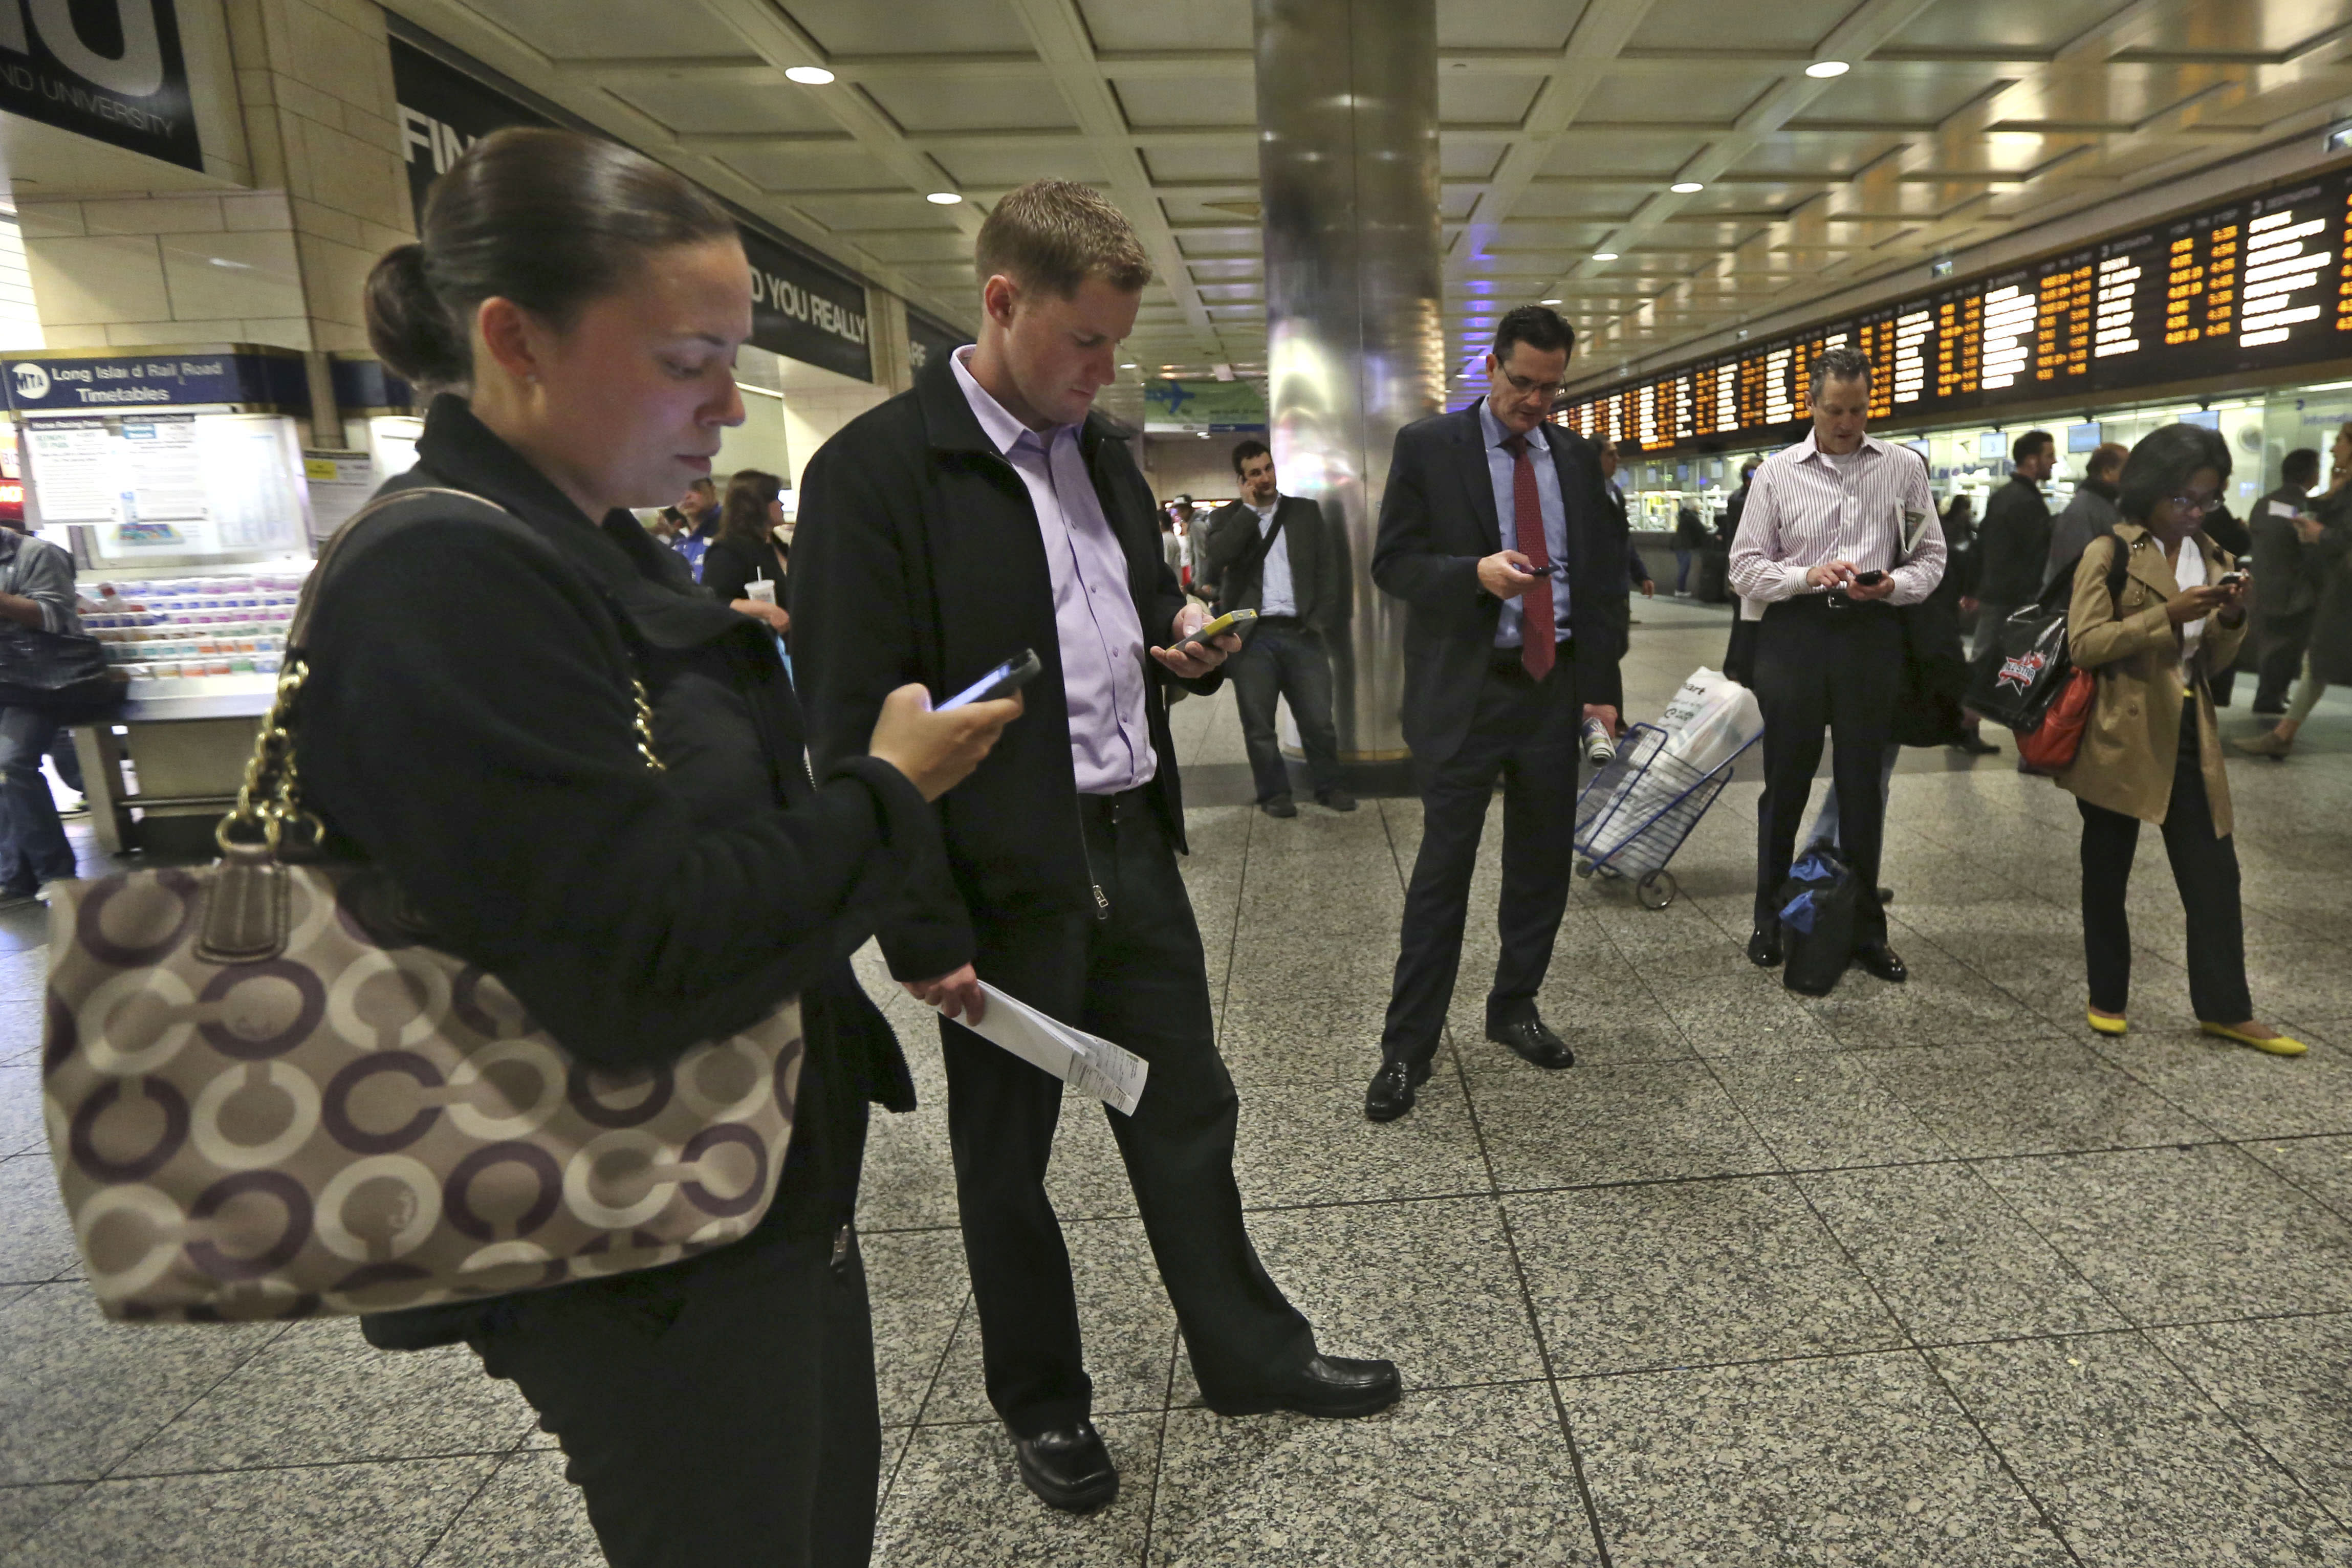 This Thursday, May 9, 2013 photo shows evening rush hour commuters looking at their smart phones while waiting for trains at the Long Island Railroad area inside Penn Station in New York. The busiest passenger train station in the United States, gateway to the biggest city in the nation, is a 1960s-era, utilitarian labyrinth built in what is essentially the basement of Madison Square Garden. Two decades after ambitious plans were unveiled to improve Penn Station while expanding it into the massive Beaux Arts post office building across the street, there are few visible signs of change. (AP Photo/Mary Altaffer)